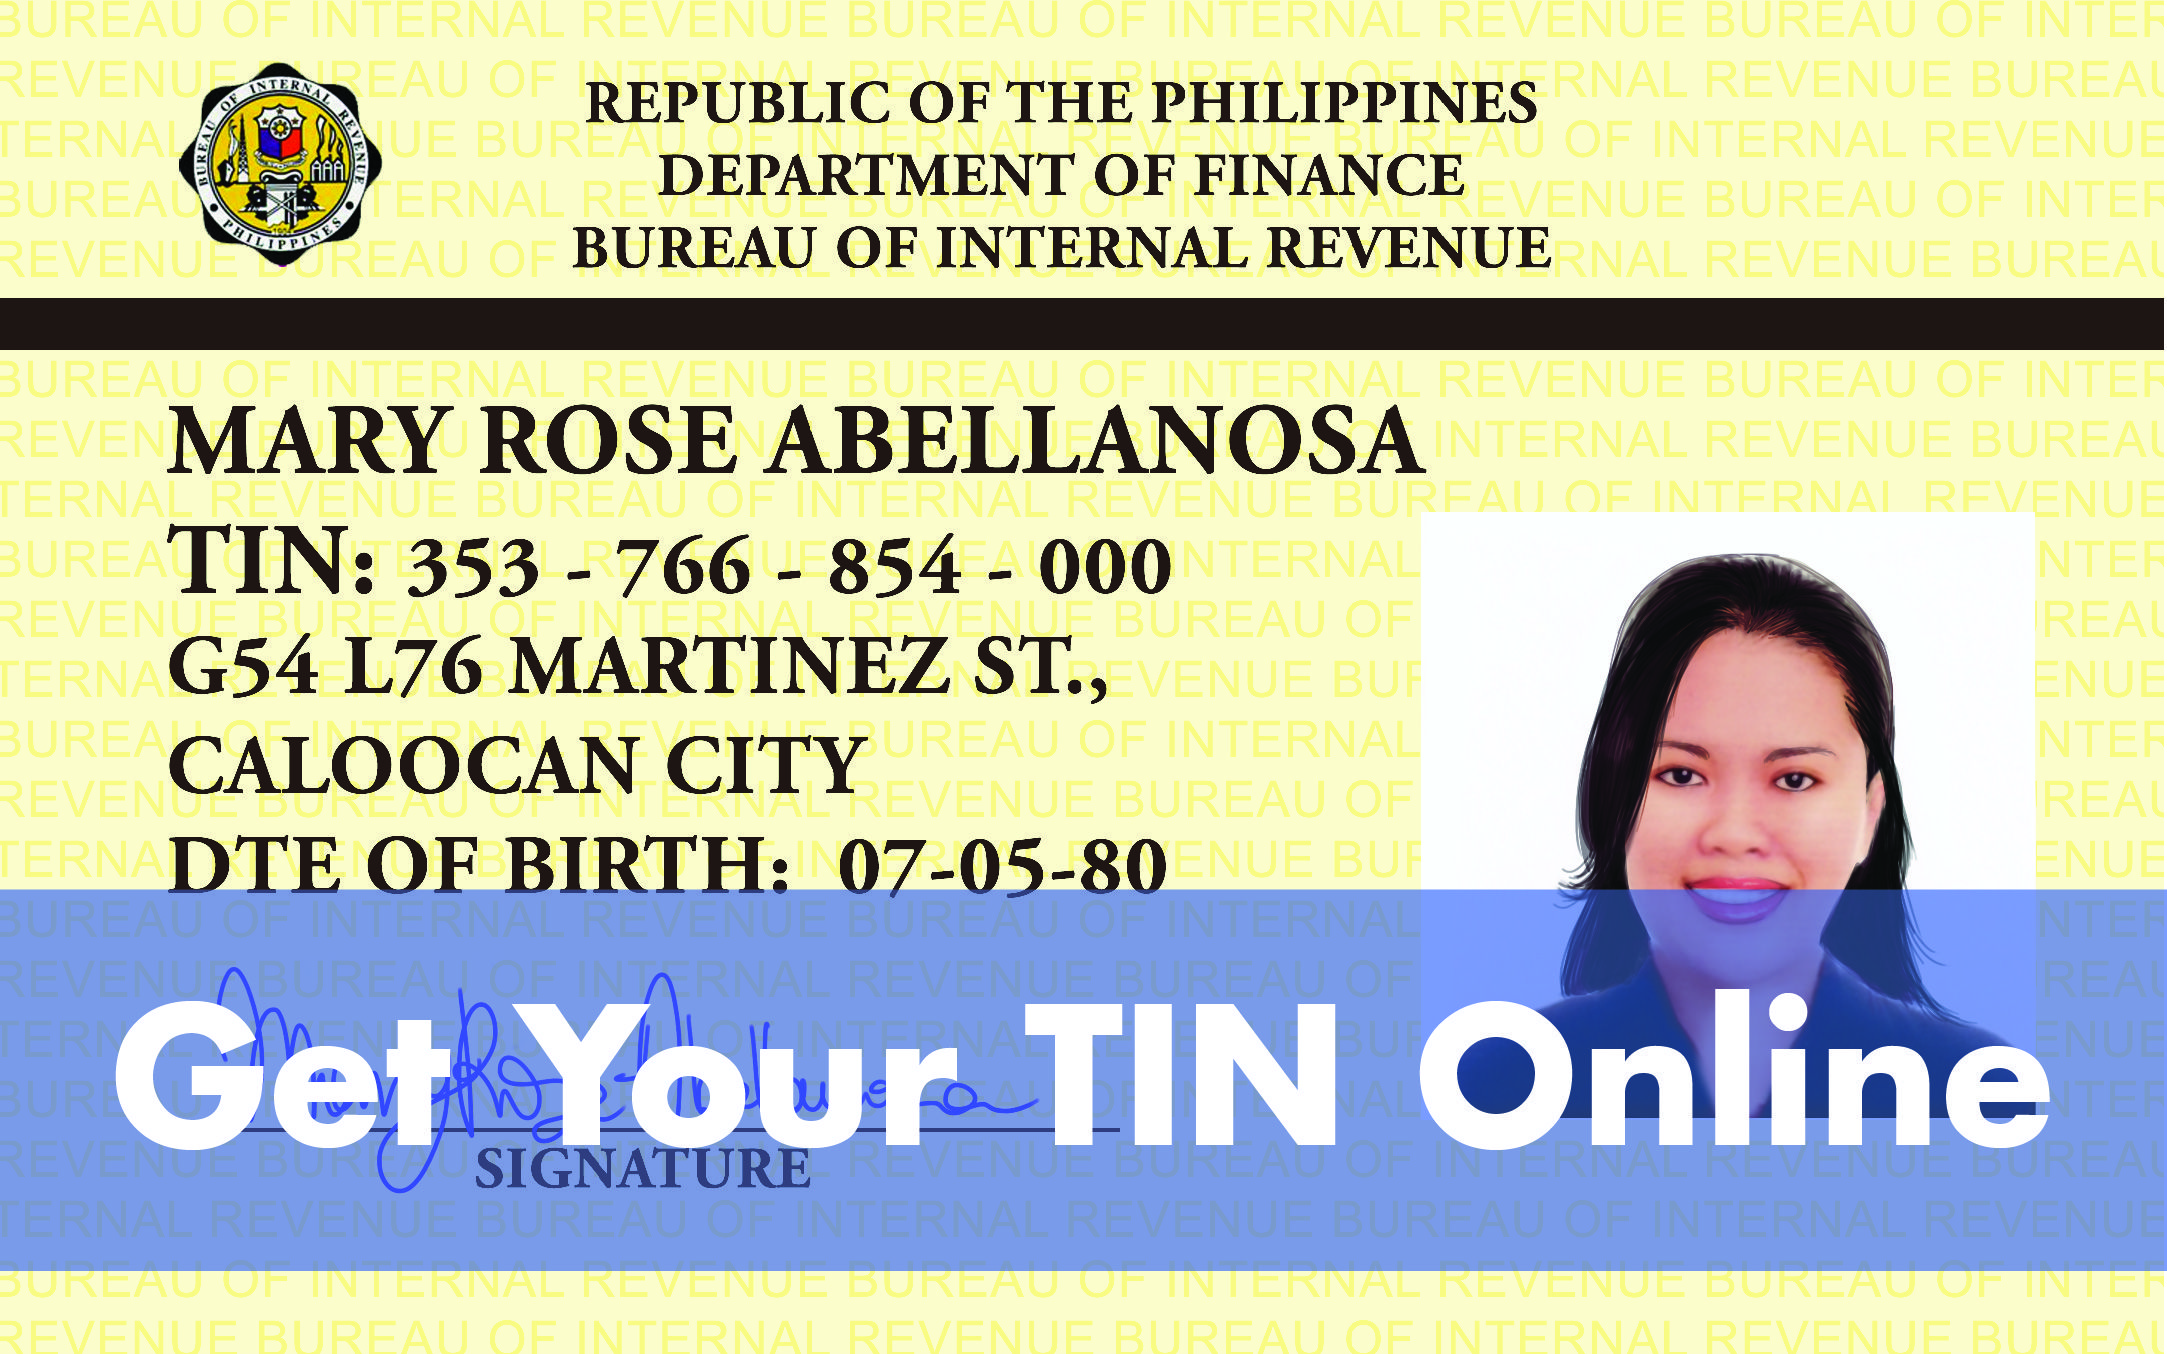 How To Get A Tin Online Getting Tax Identification Number From The Bir In 2021 Tin Number Online Online Signature